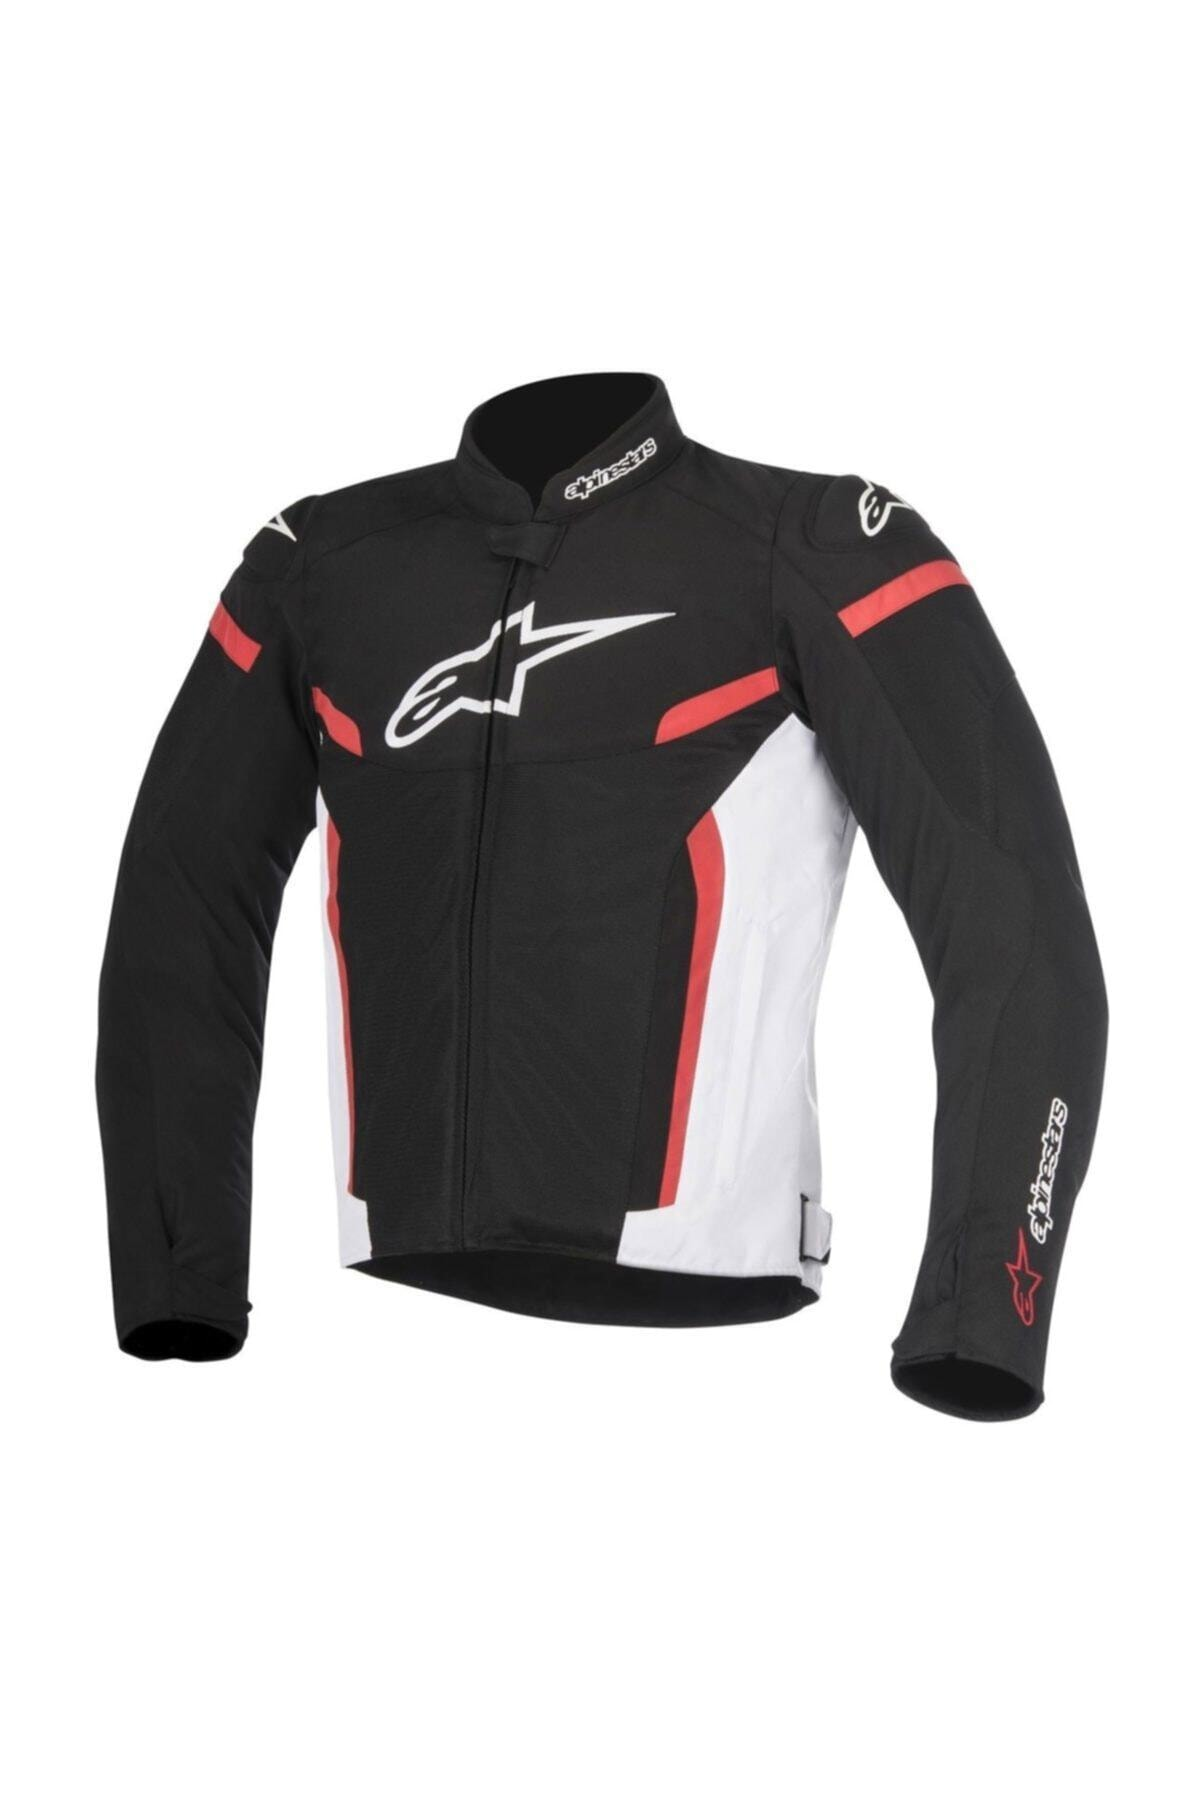 Alpinestar S T-gp Plus R V2 Air Jacket Motosiklet Montu 1